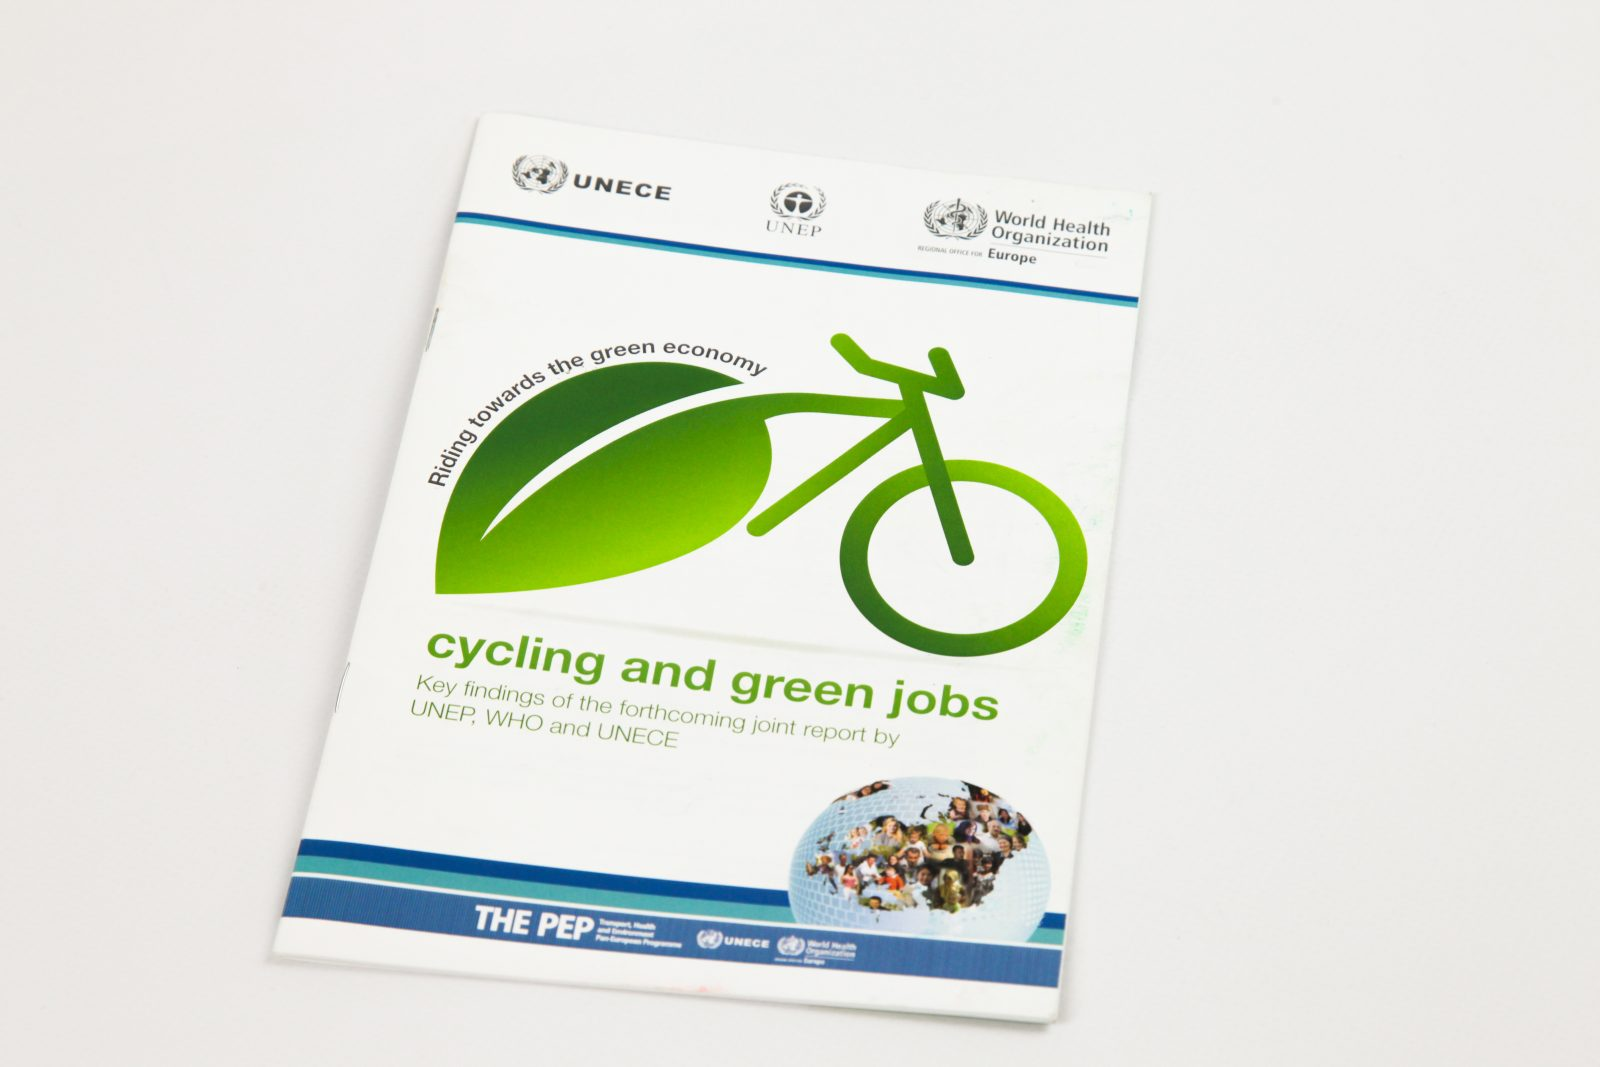 Cycling And Green Jobs Key Findings Of The Forthcoming Joint Report